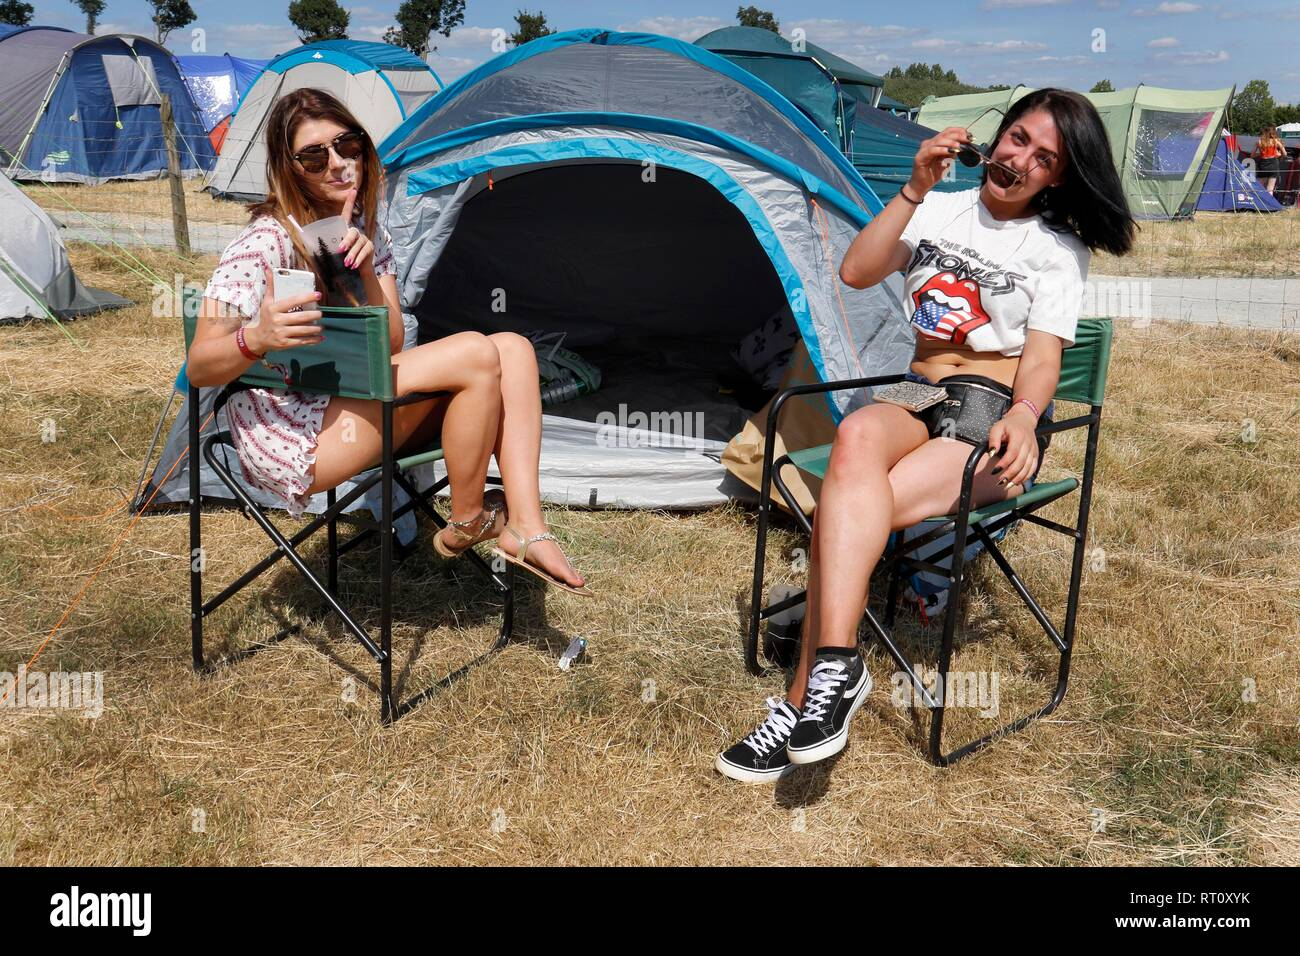 Friends camping at the Barn On The Farm festival, at Over Farm, near Gloucester, this weekend.  7th July 2018  Picture by Andrew Higgins - Thousand Wo - Stock Image